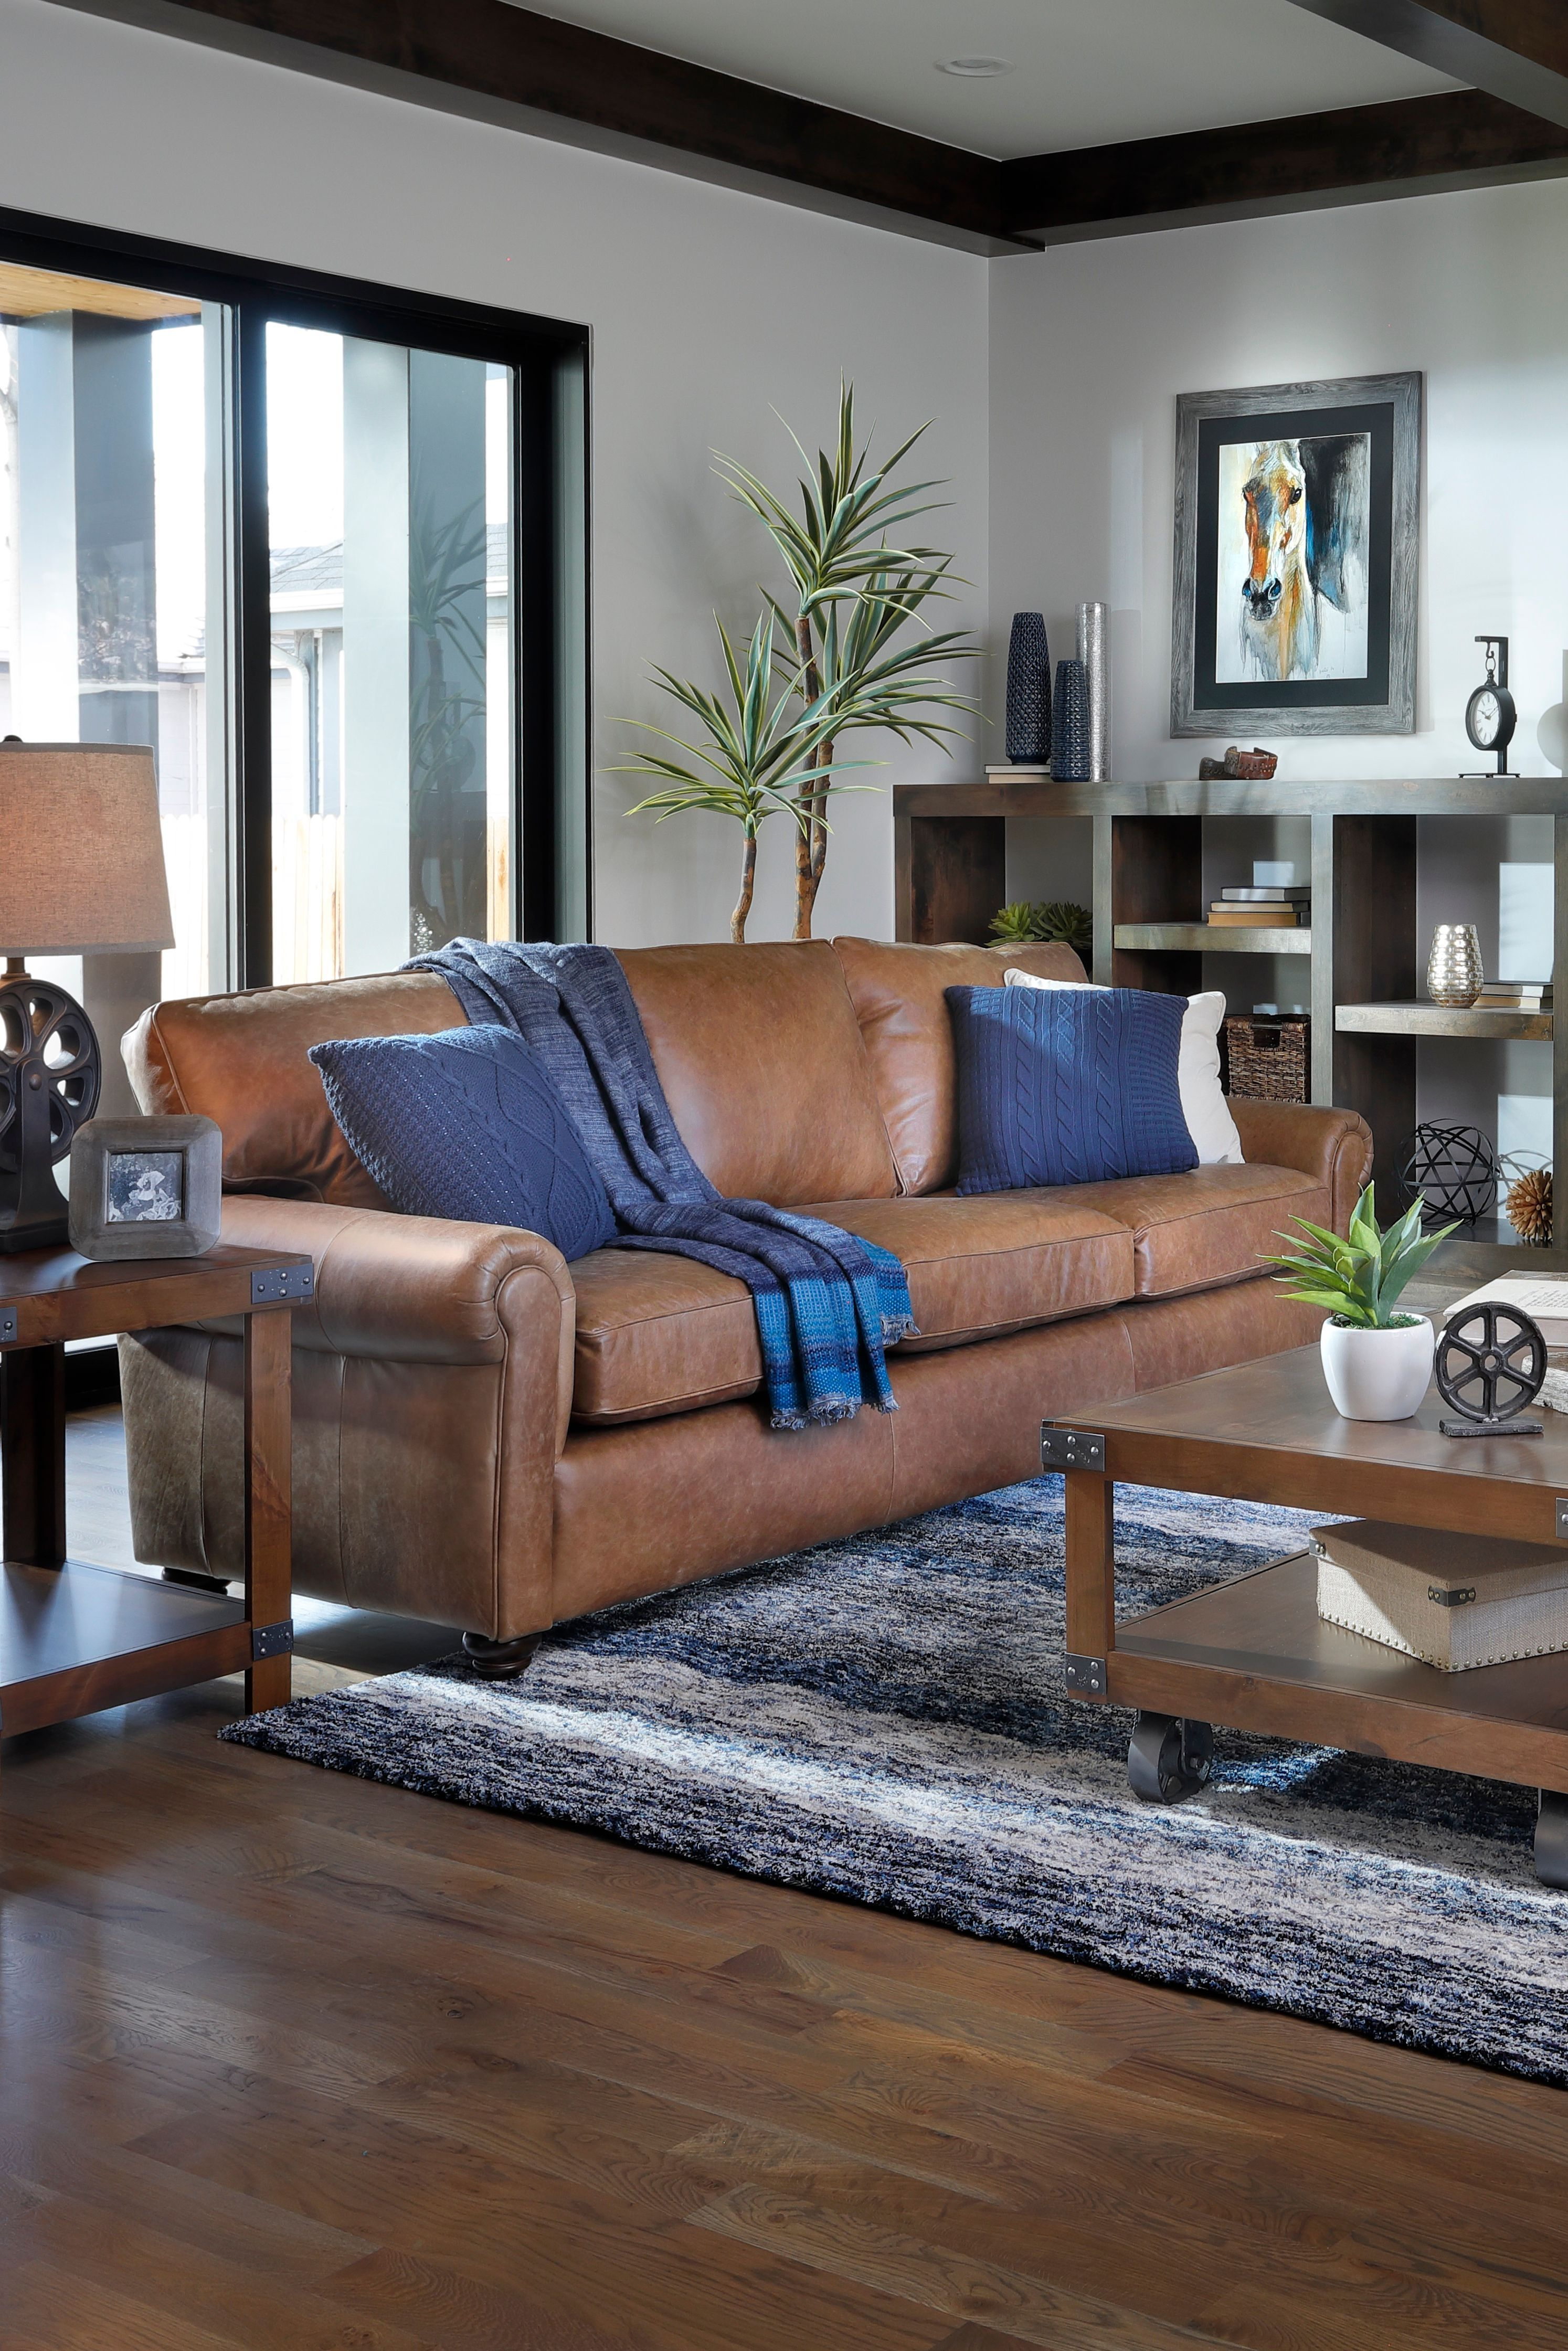 Home Interior Bedroom The chestnut brown Portico Sofa invites you to relax in top-grain Italian leather style. Matching Portico Loveseat Chair and Ottoman complete your living room or family room. For a limited time save $100 on the Portico Sofa during the Memorial Day Sale. Ends 6/4/20. #memorialdaysale #furniturerow #leather #livingroom #familyroom #home #homedecor #stayhome.Home Interior Bedroom  The chestnut brown Portico Sofa invites you to relax in top-grain Italian leather style. Matching